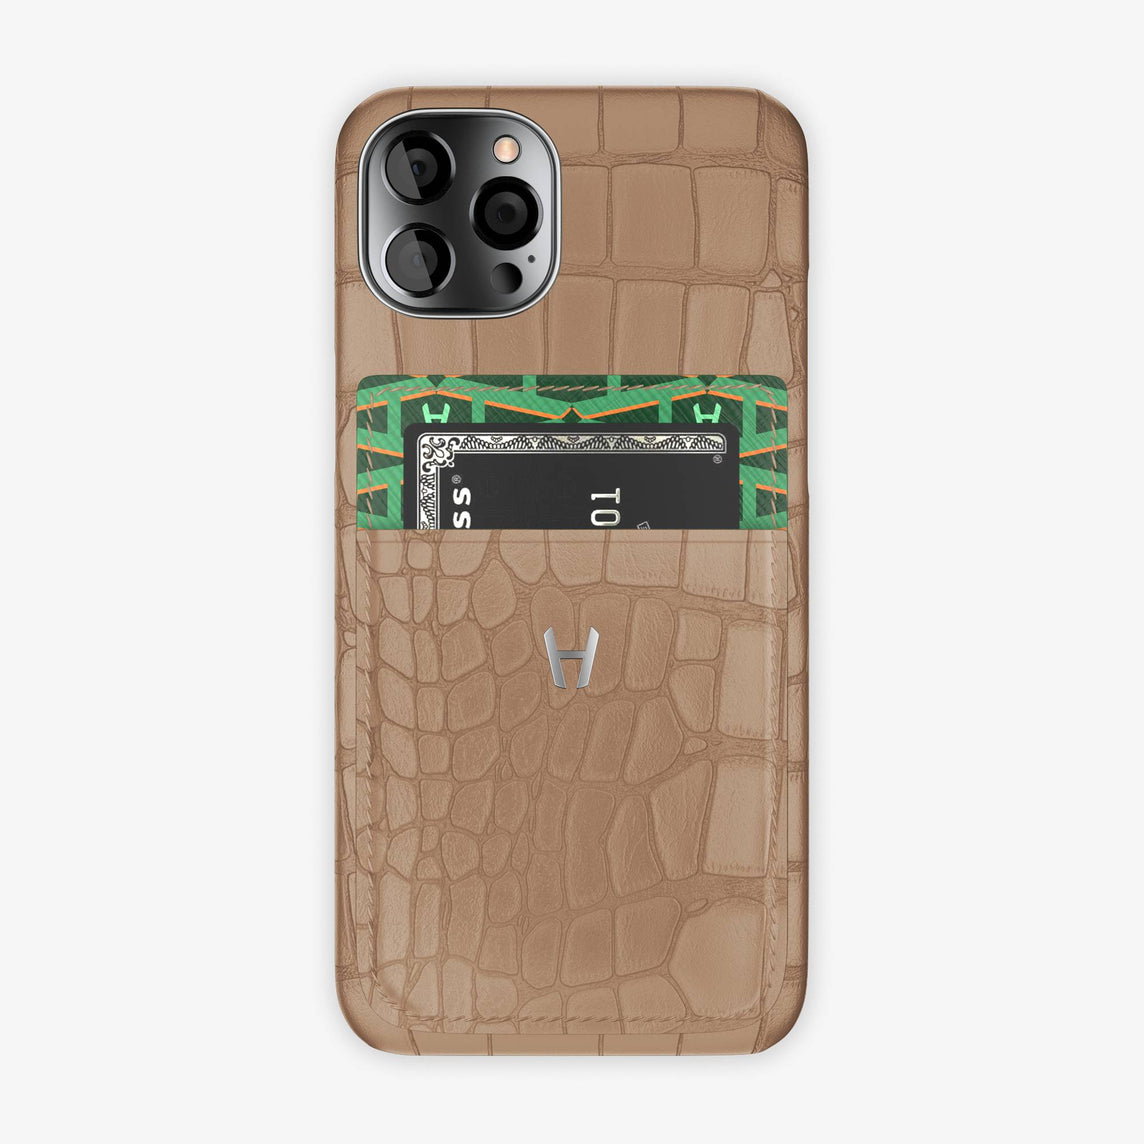 Alligator Pocket Case iPhone 12 & 12 Pro | Latte/Green - Stainless Steel